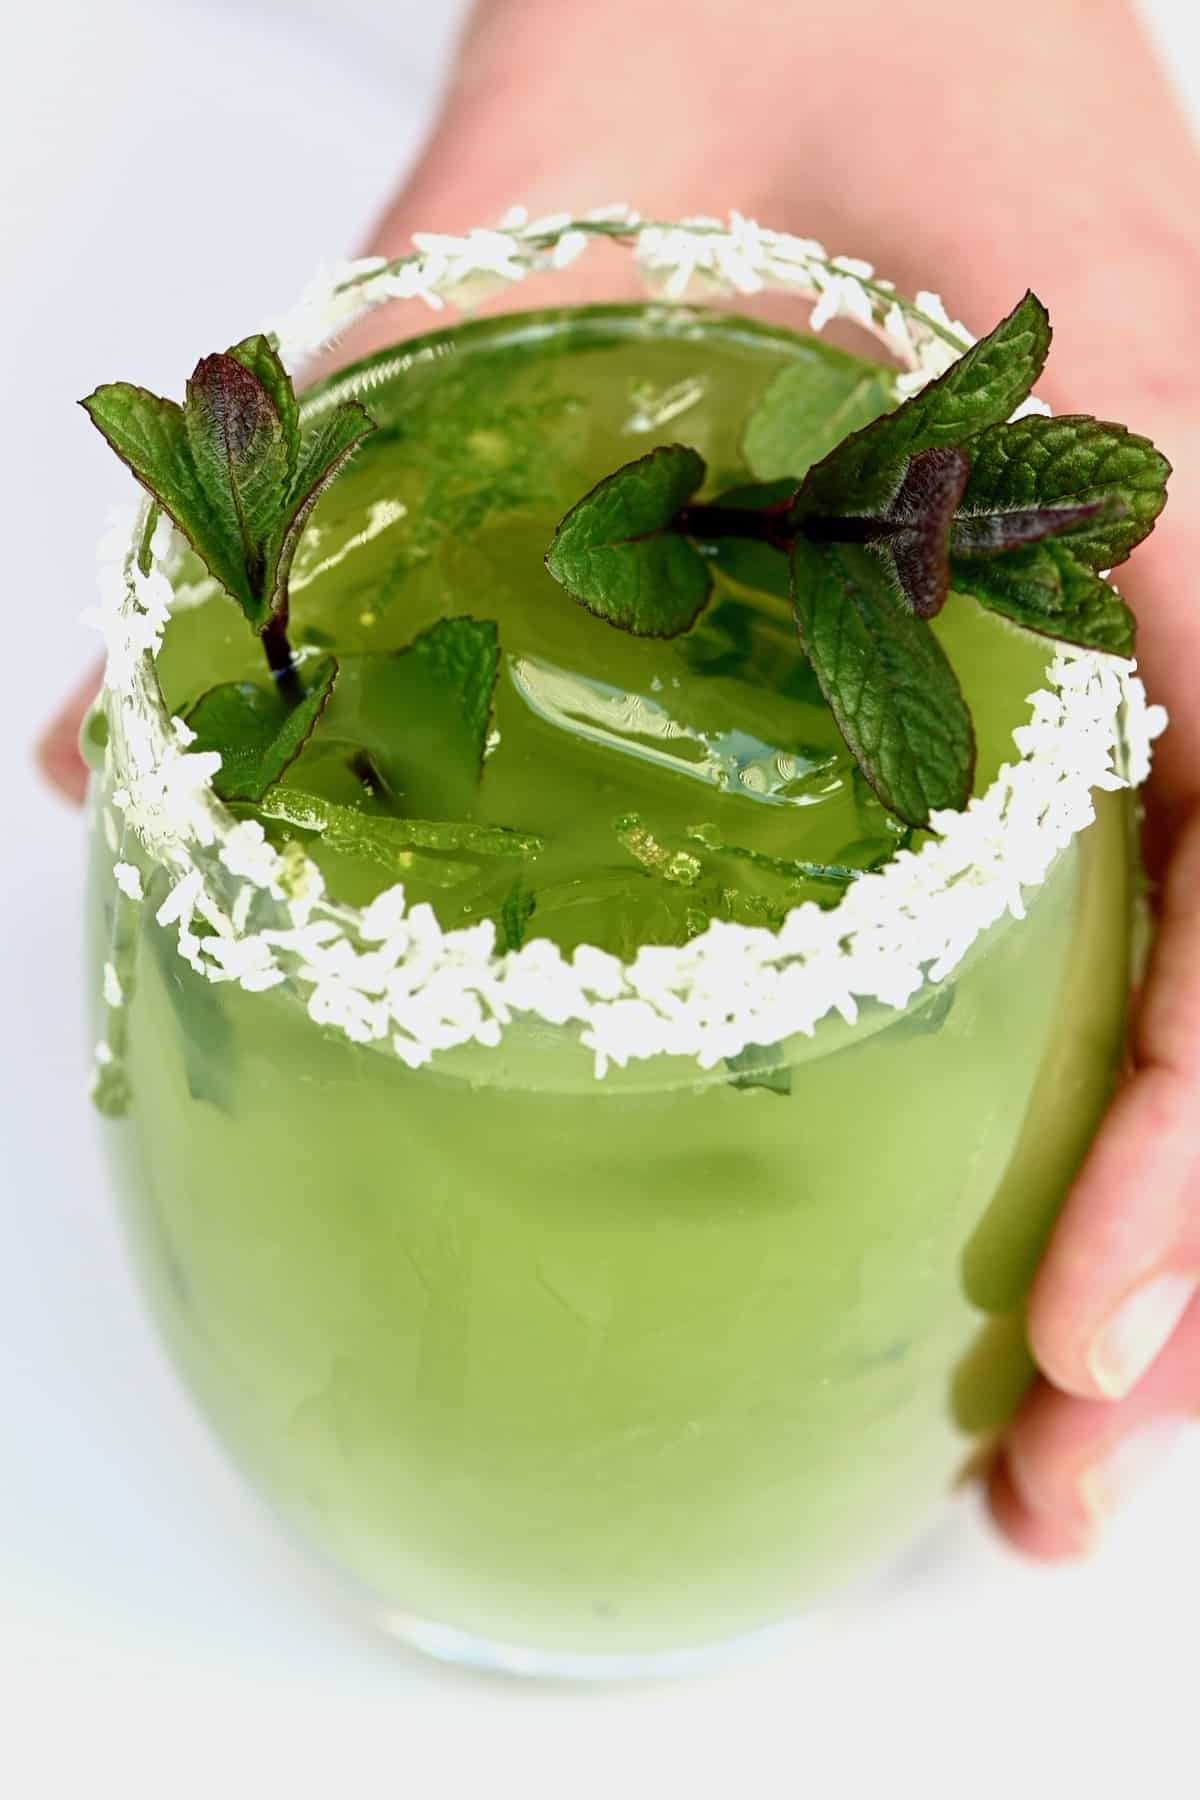 Hand holding a glass with cucumber lemonade